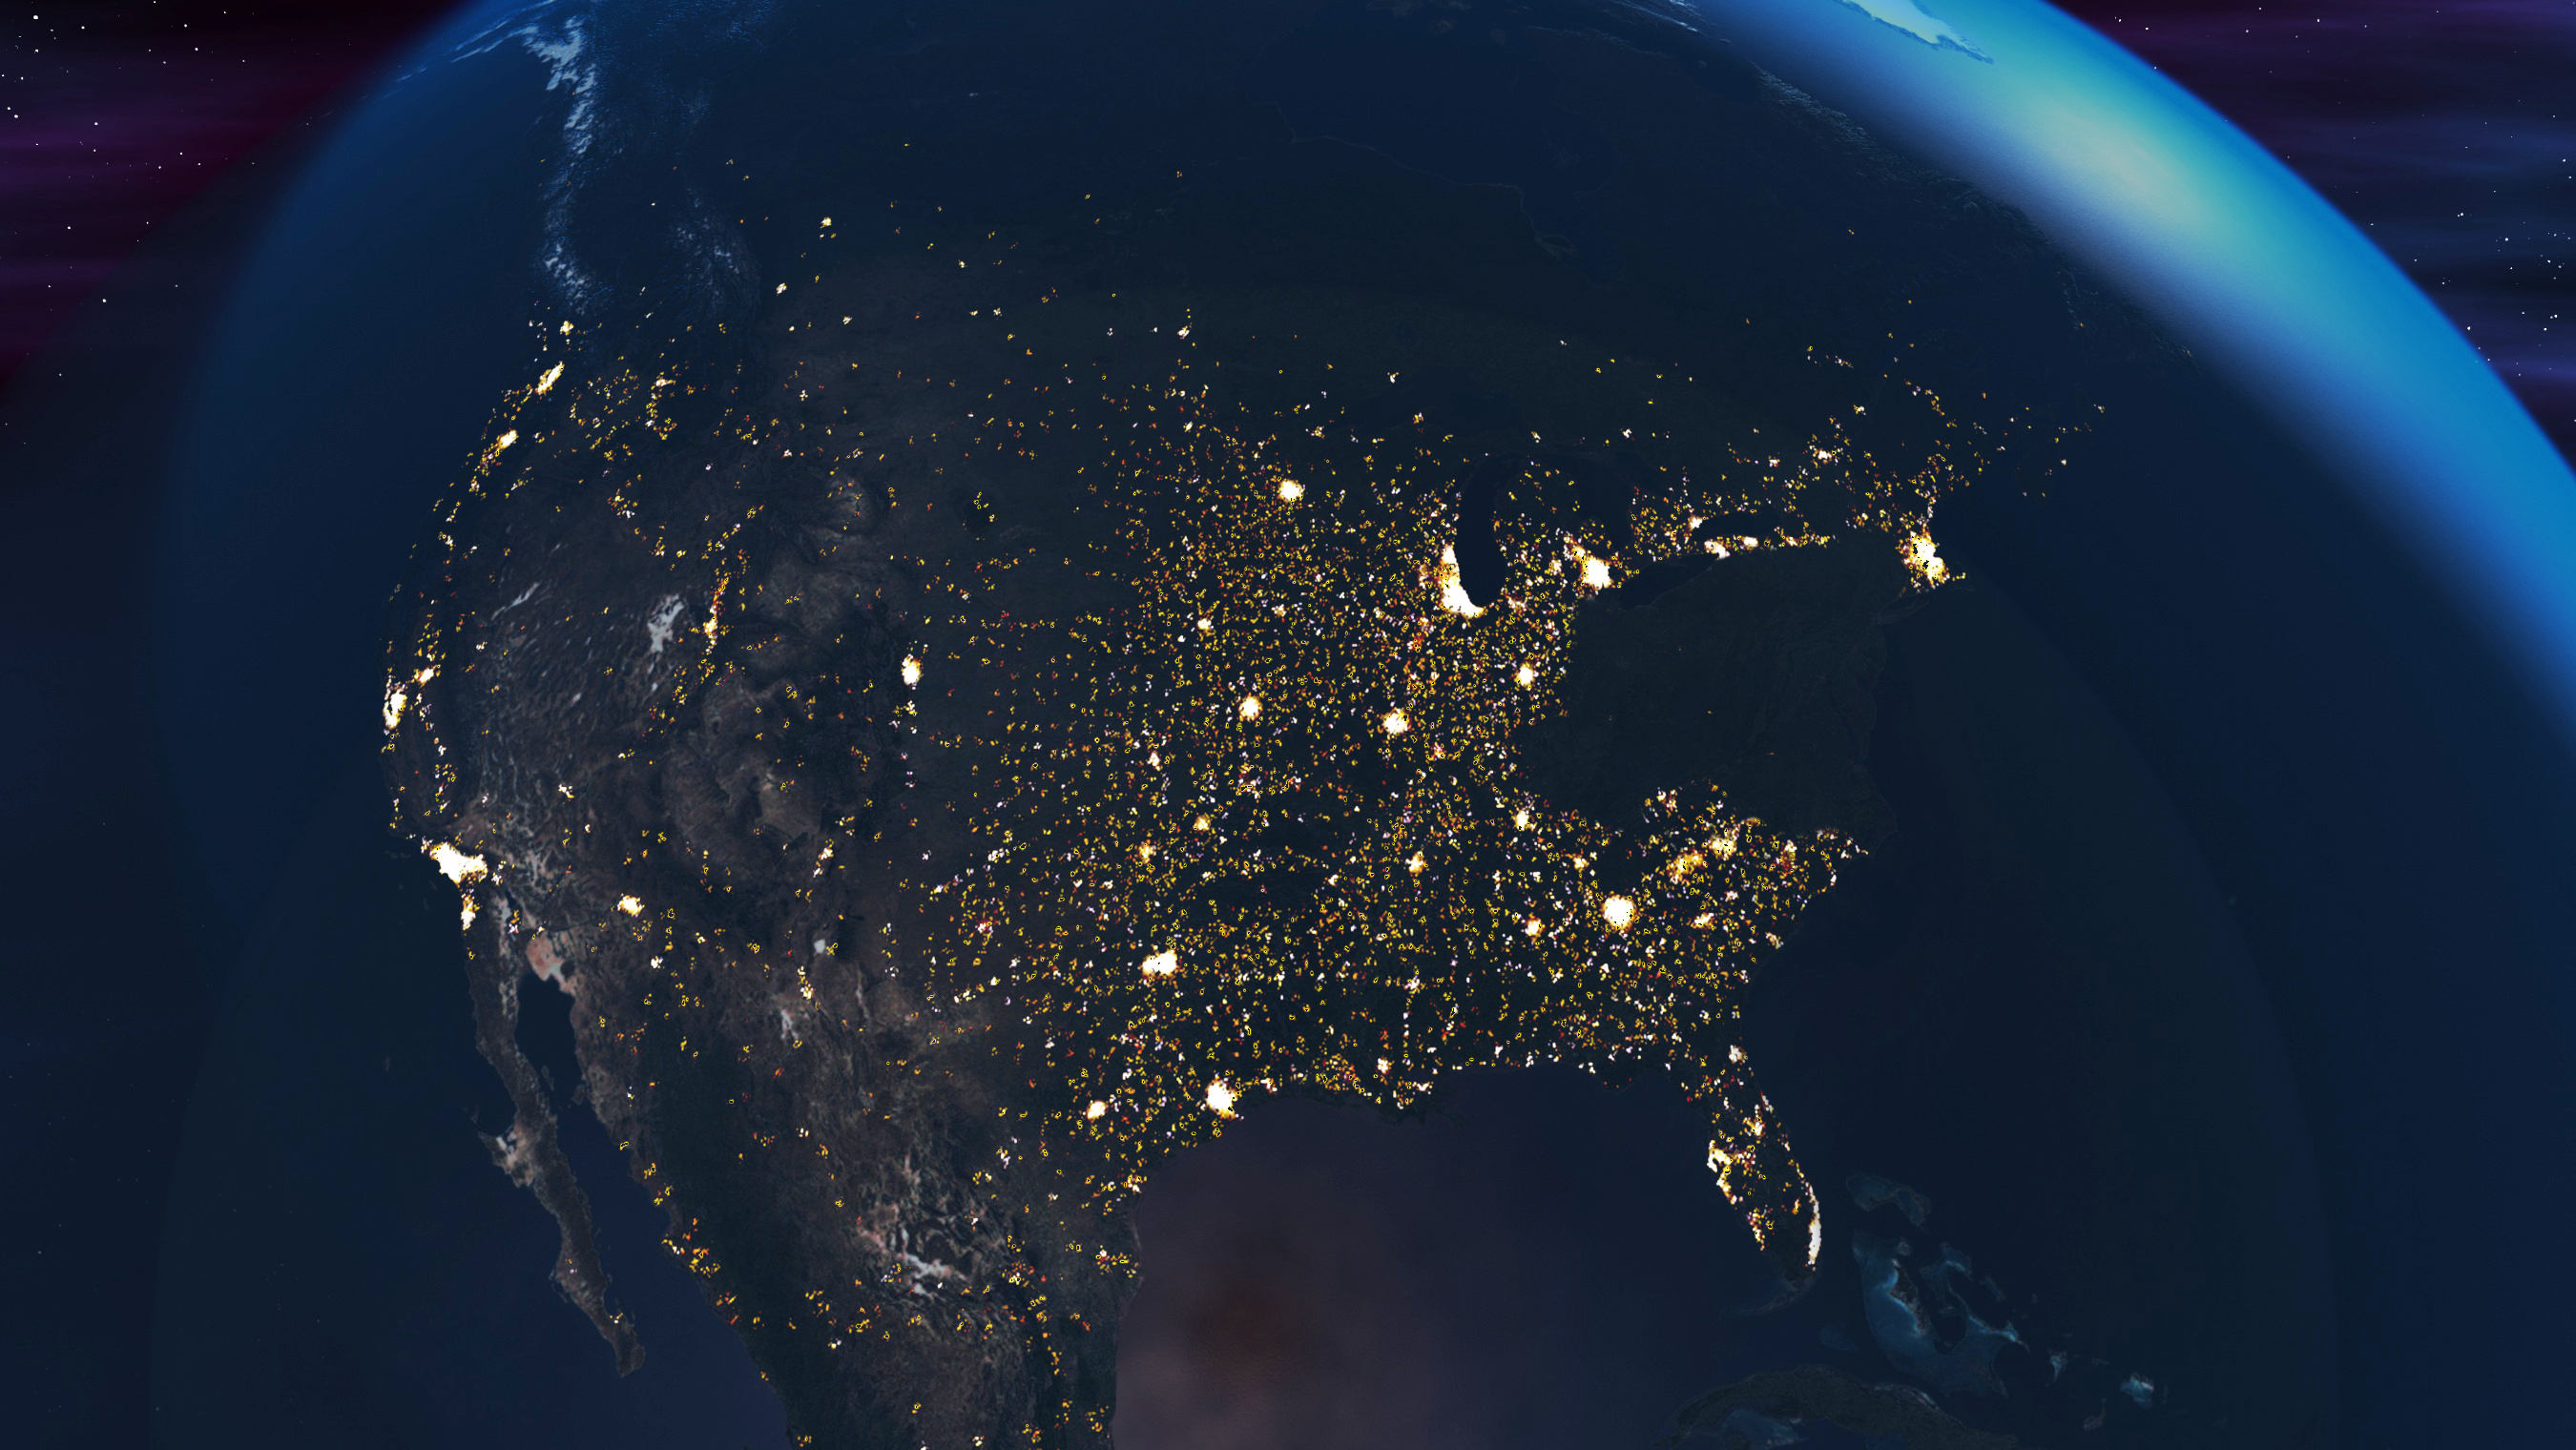 BAE Systems is working with DARPA to develop technology to quickly restore electric power after a cyber attack takes down the grid. (Photo: BAE Systems)